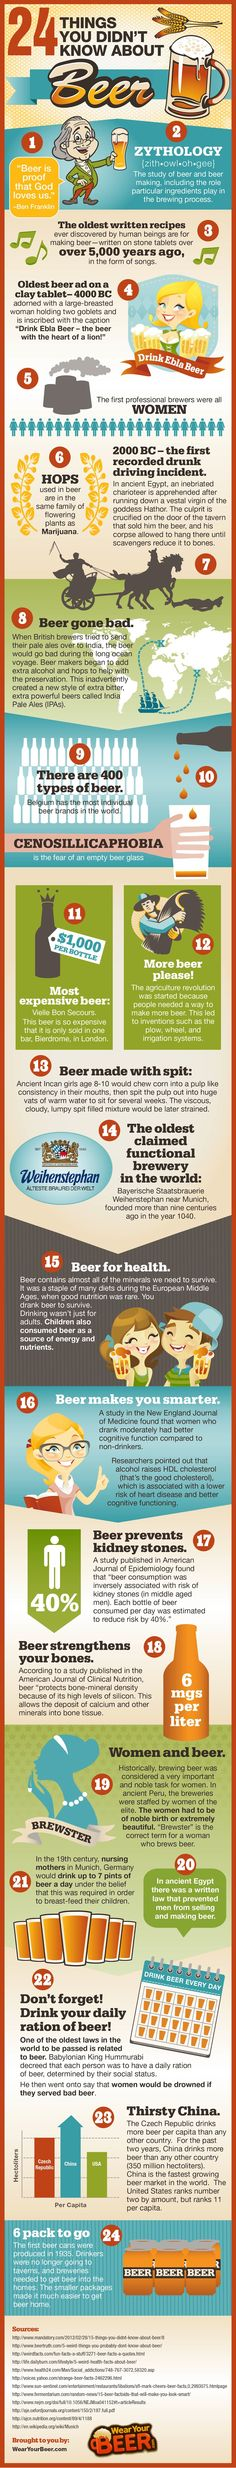 24 Things You Didn't Know About Beer [Infographic] In ancient Peru, the brewing of beer was a task that was solely reserved for women of the noble class. And in more bizarre historical news, 19th century mothers in Munich actually downed several pints of beer a day, because it was believed that it was beneficial and necessary for breastfeeding.